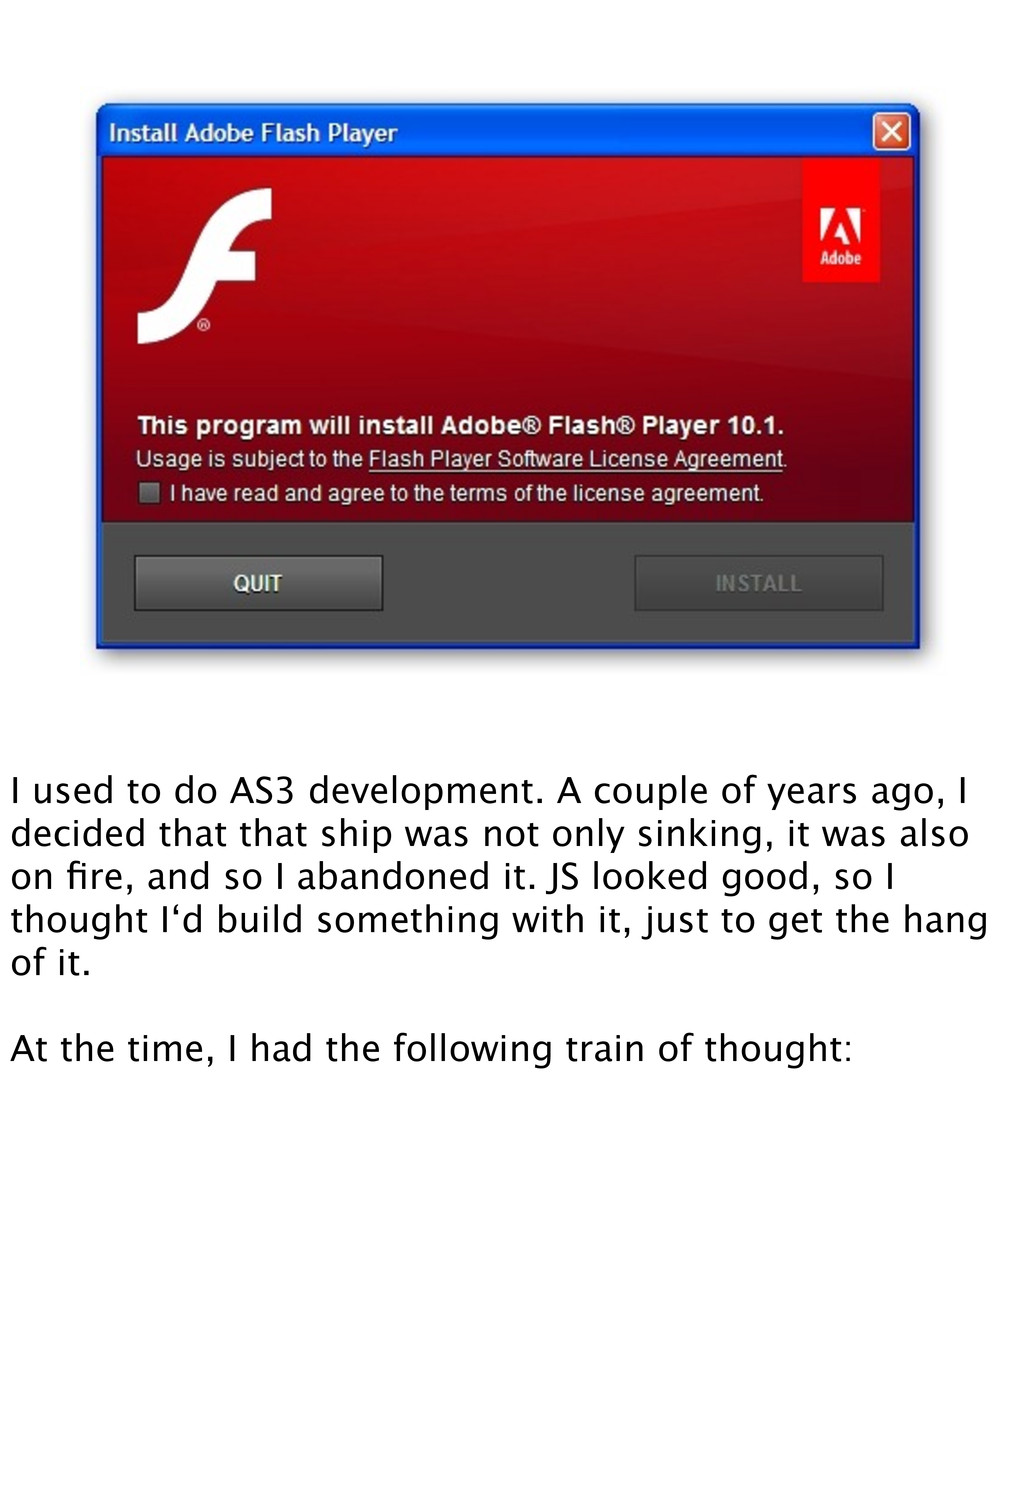 I used to do AS3 development. A couple of years...